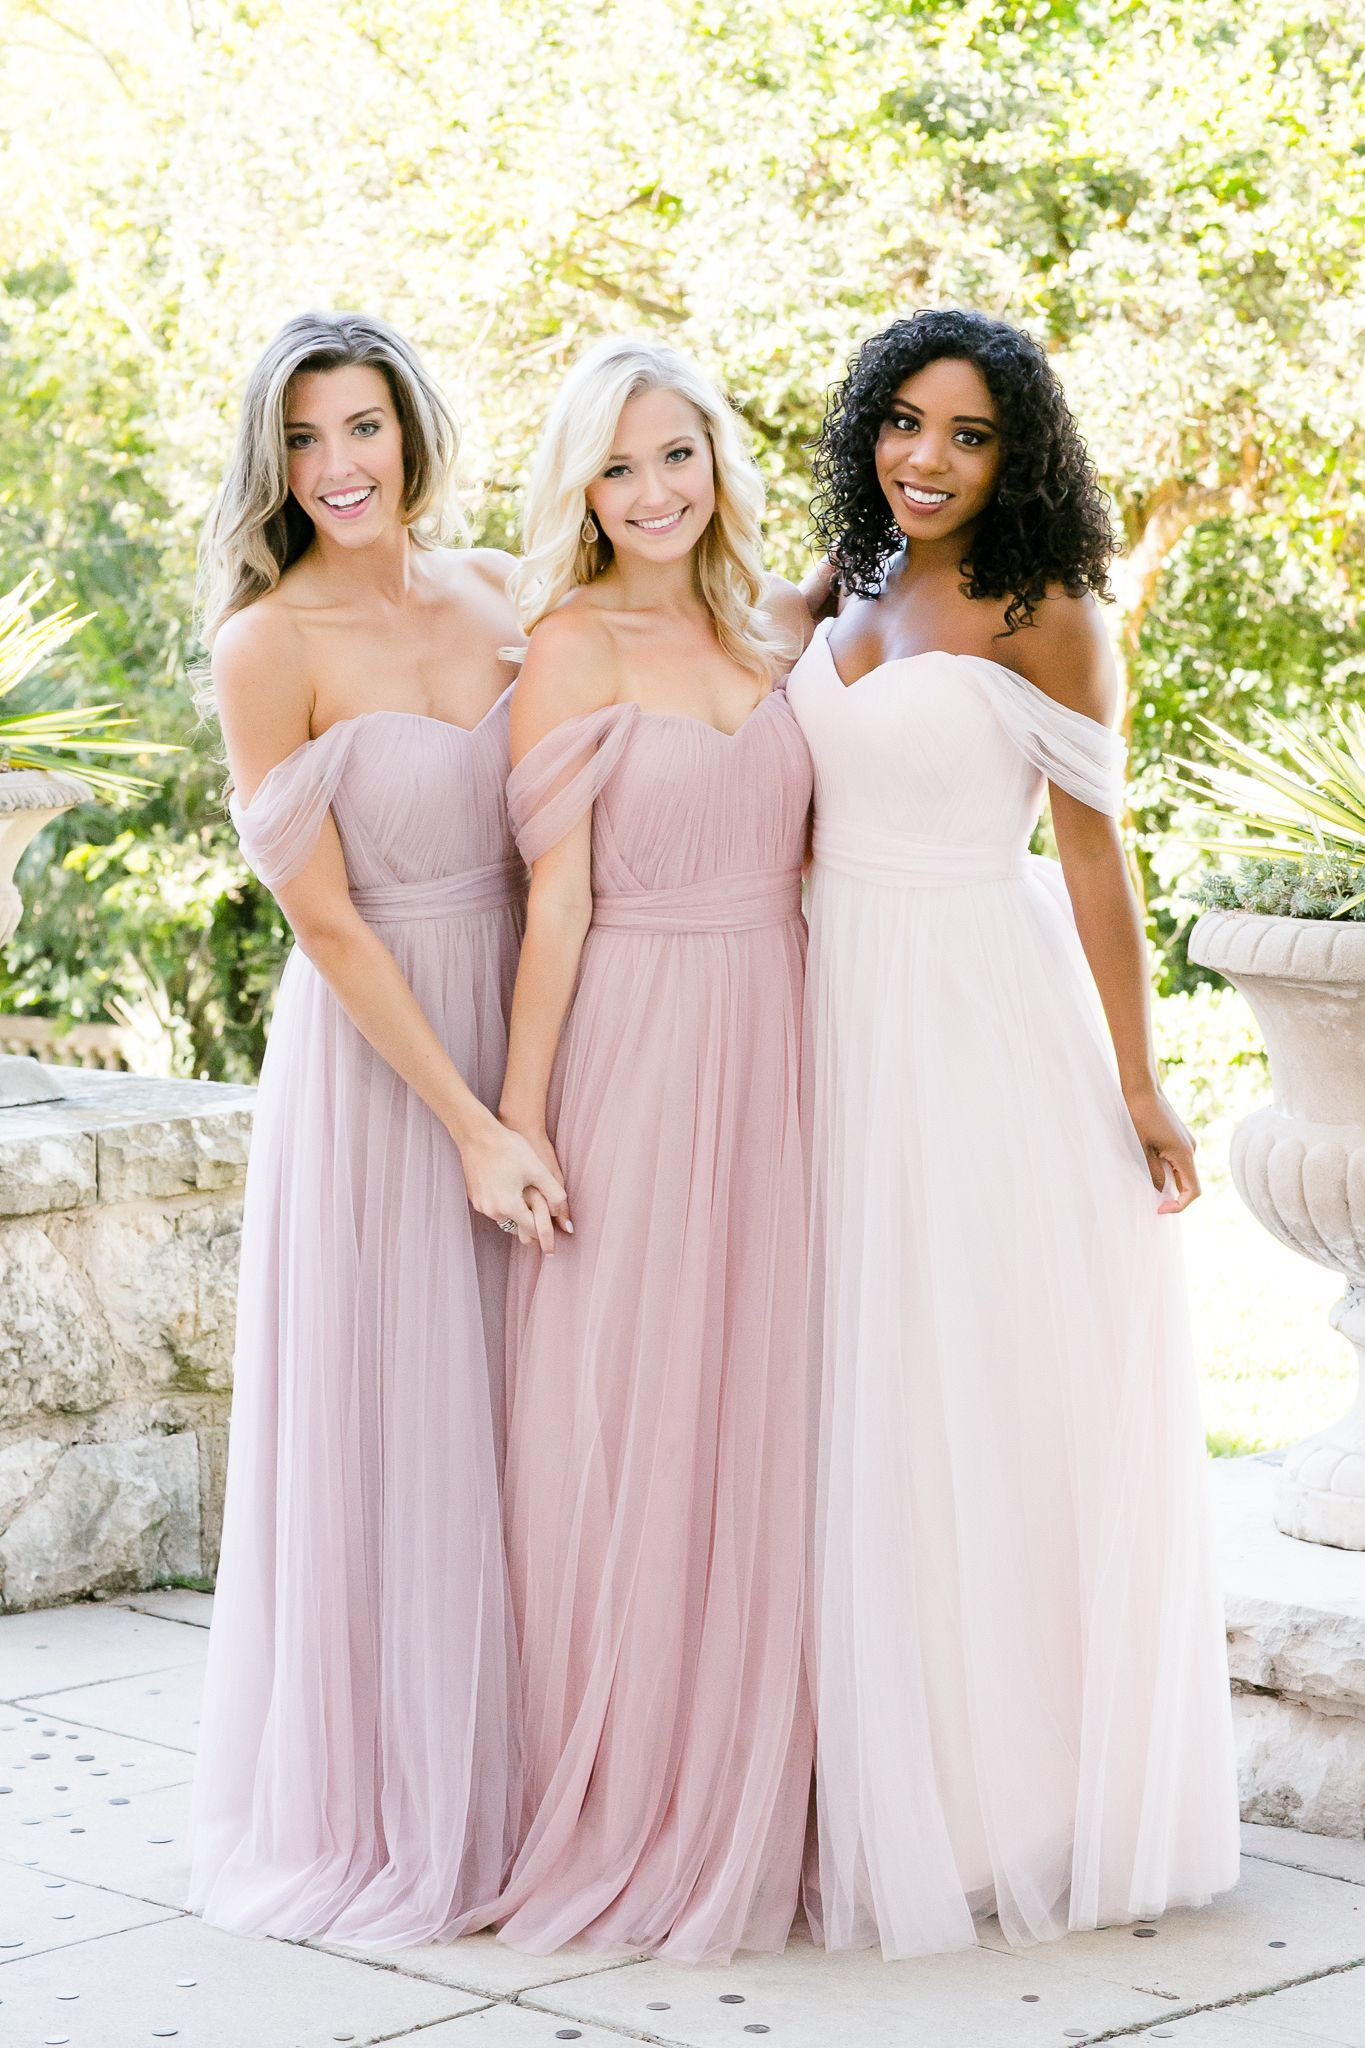 Mix and match revelry bridesmaid dresses and separatesvelry has mix and match revelry bridesmaid dresses and separatesvelry has a wide selection of unique bridesmaids dresses including tulle skirts classic chiffon ombrellifo Image collections